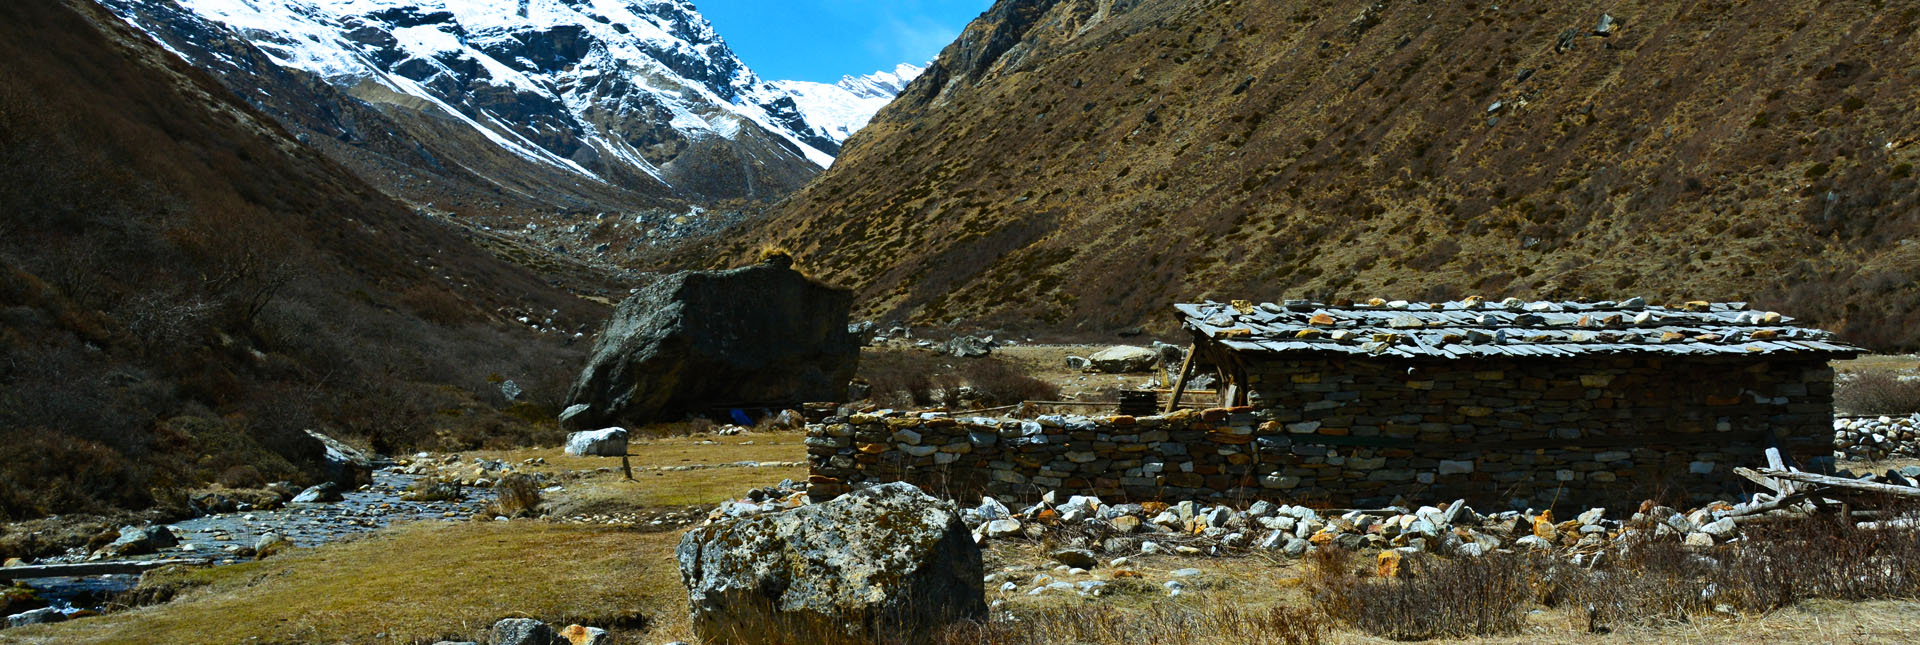 Stone roofed huts during the trek